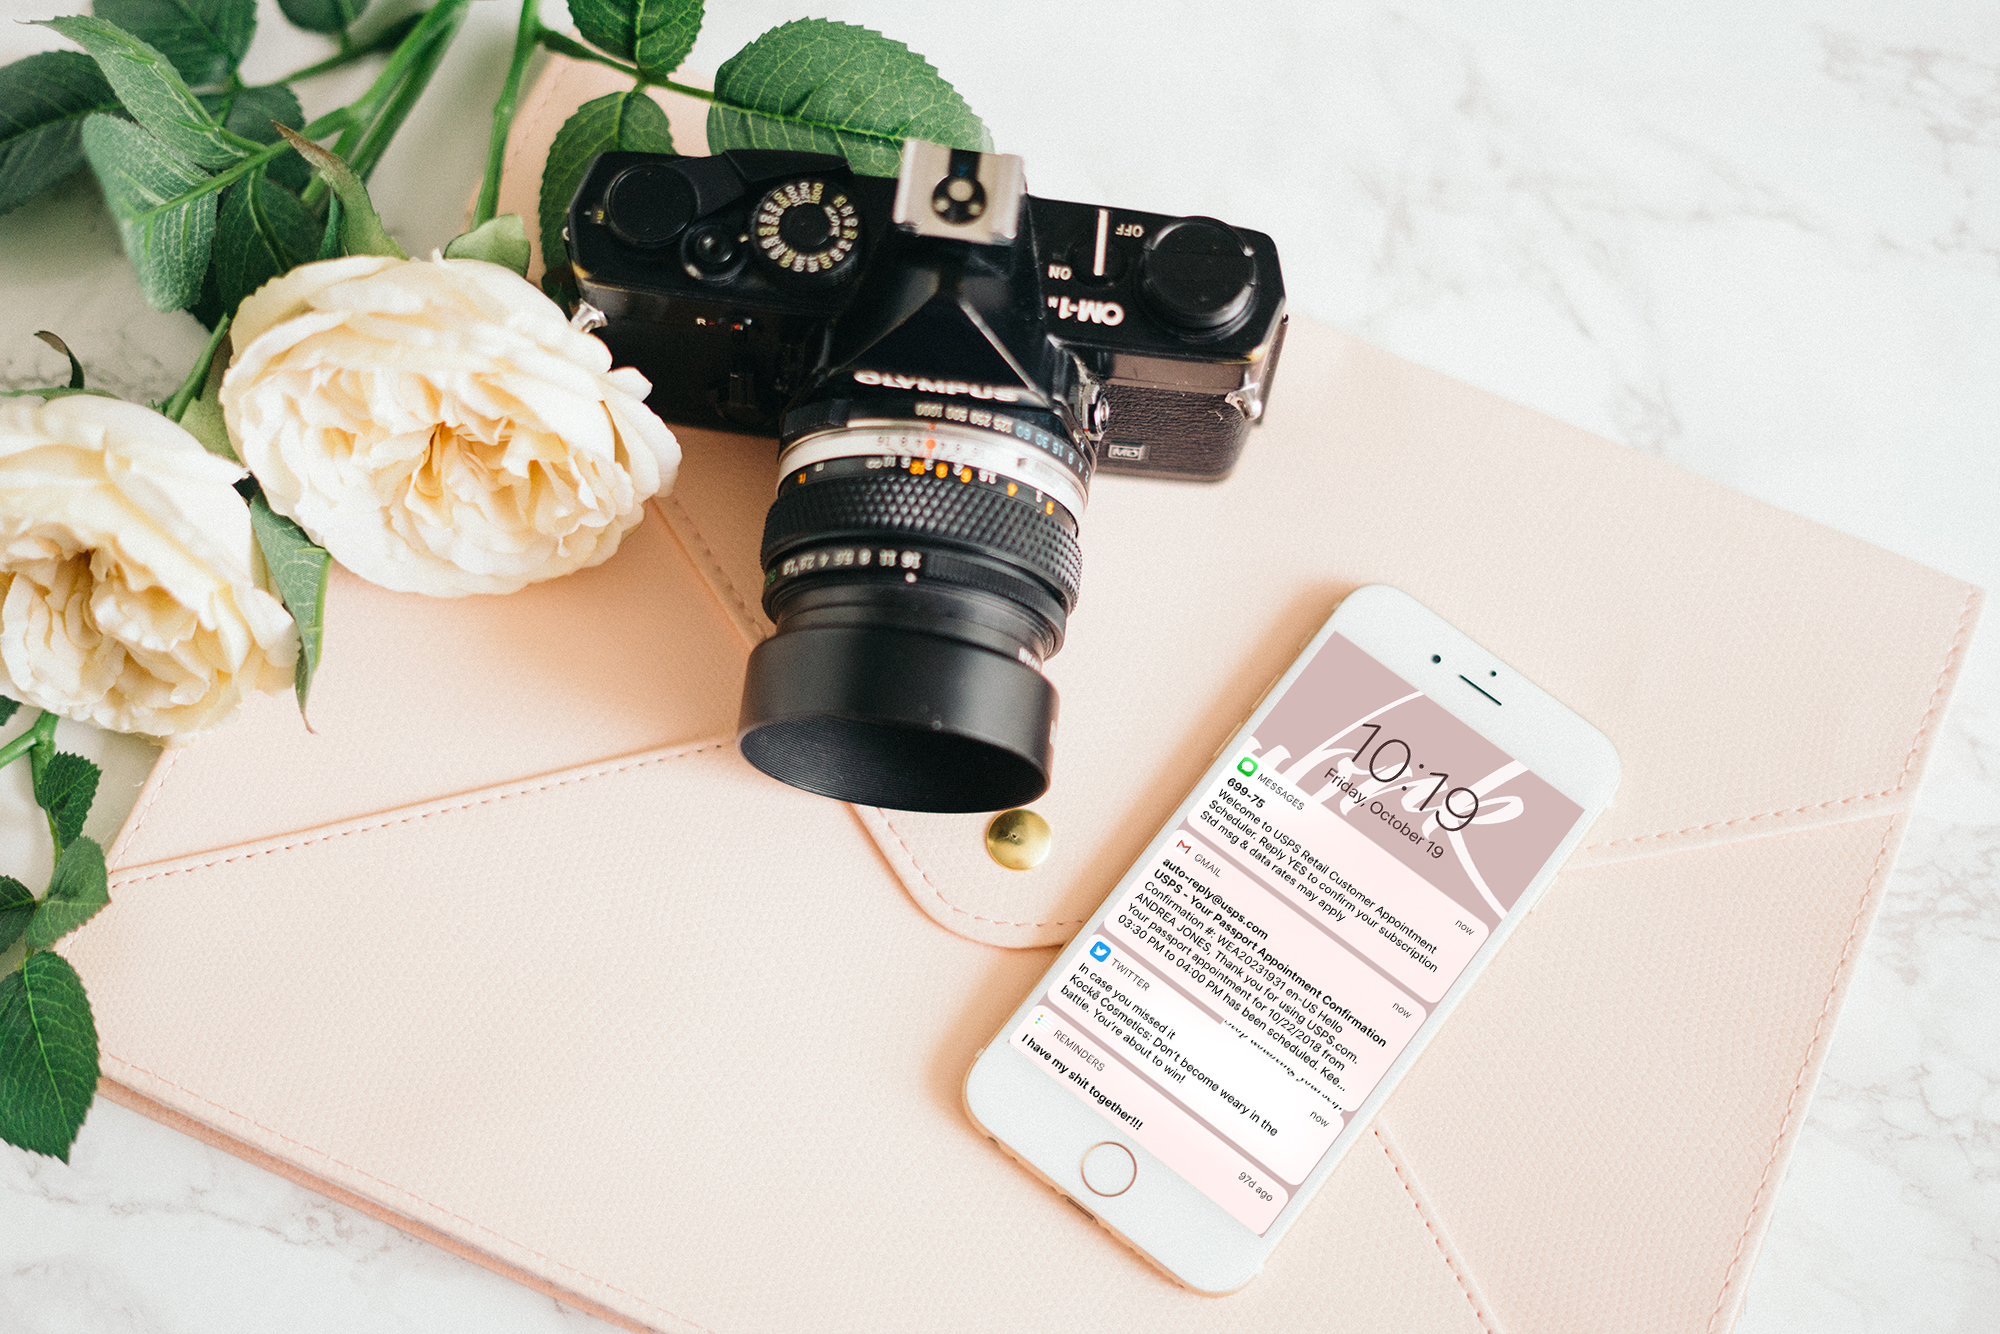 Andrea Fenise Memphis Fashion Blogger shares advice on getting passports